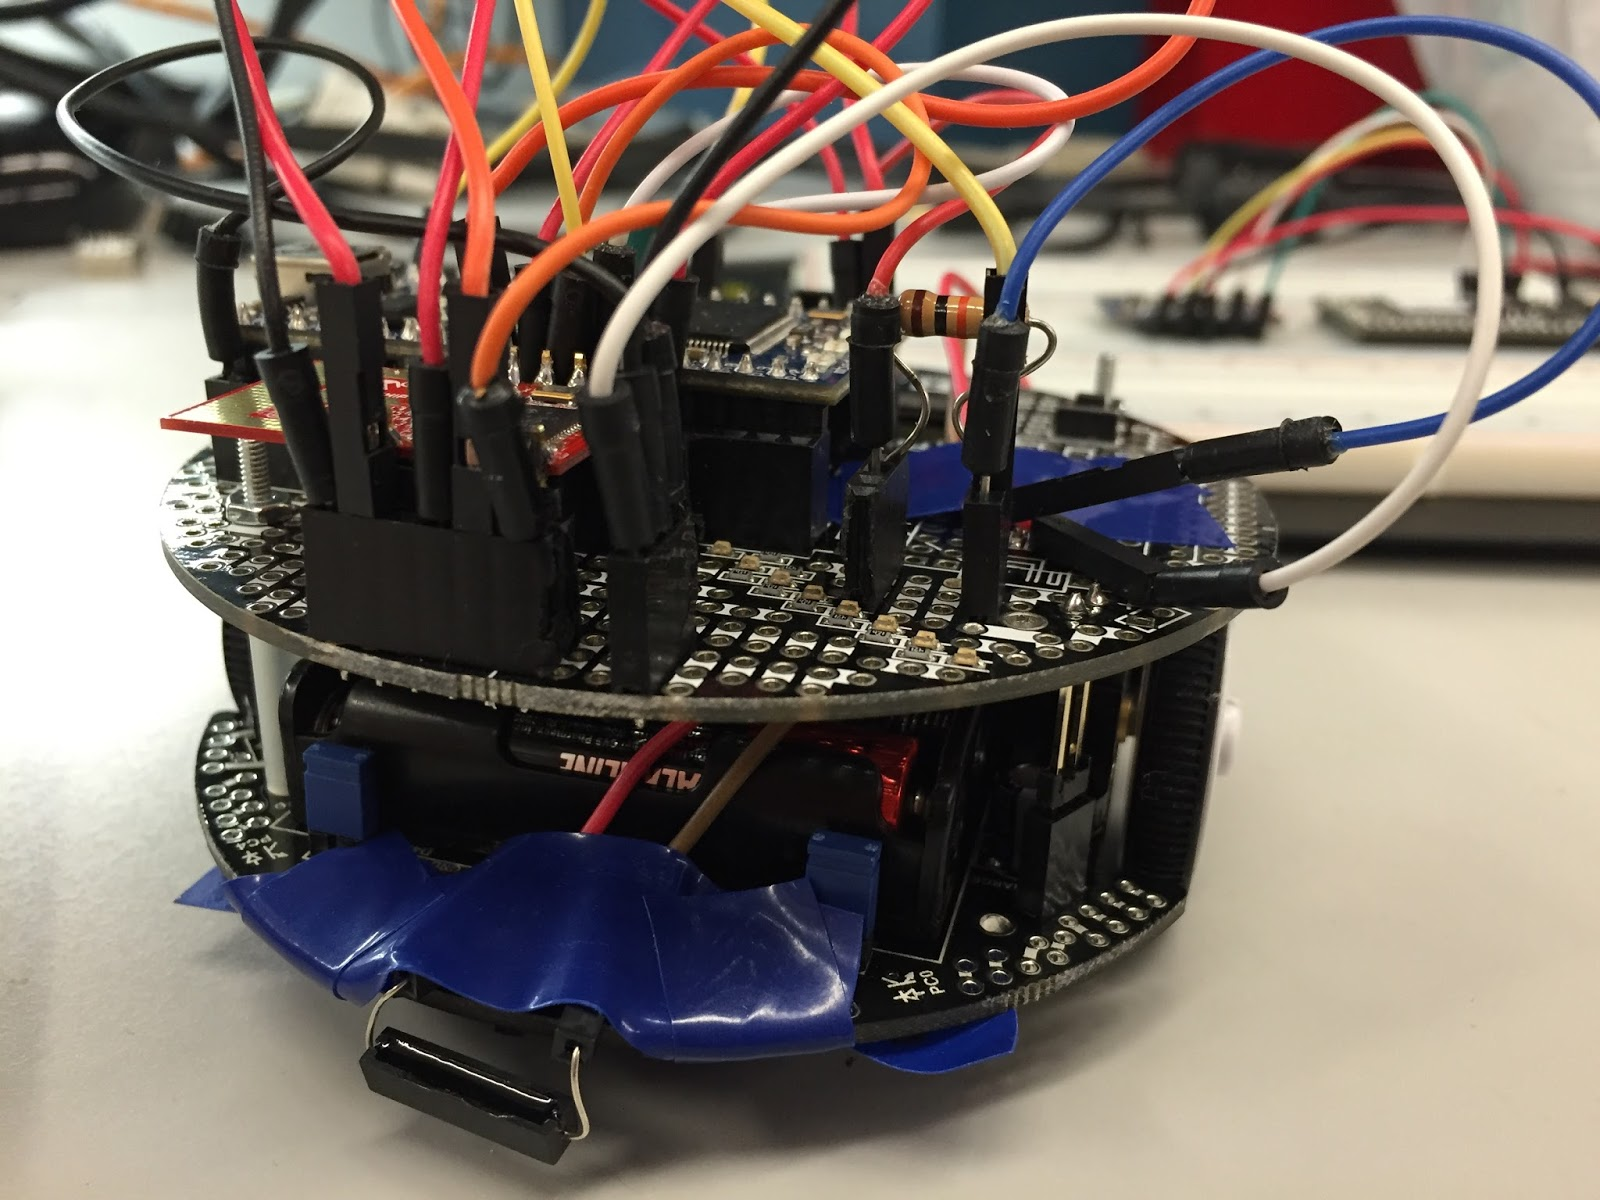 Multi Robot Area Covering Switching From Hall Effect Sensor To Reed Wiring I Even Tried Connect Two Switches In Parallel Extend The They Can Detect But It Didnt Help Too Much Because Primary Problem Is